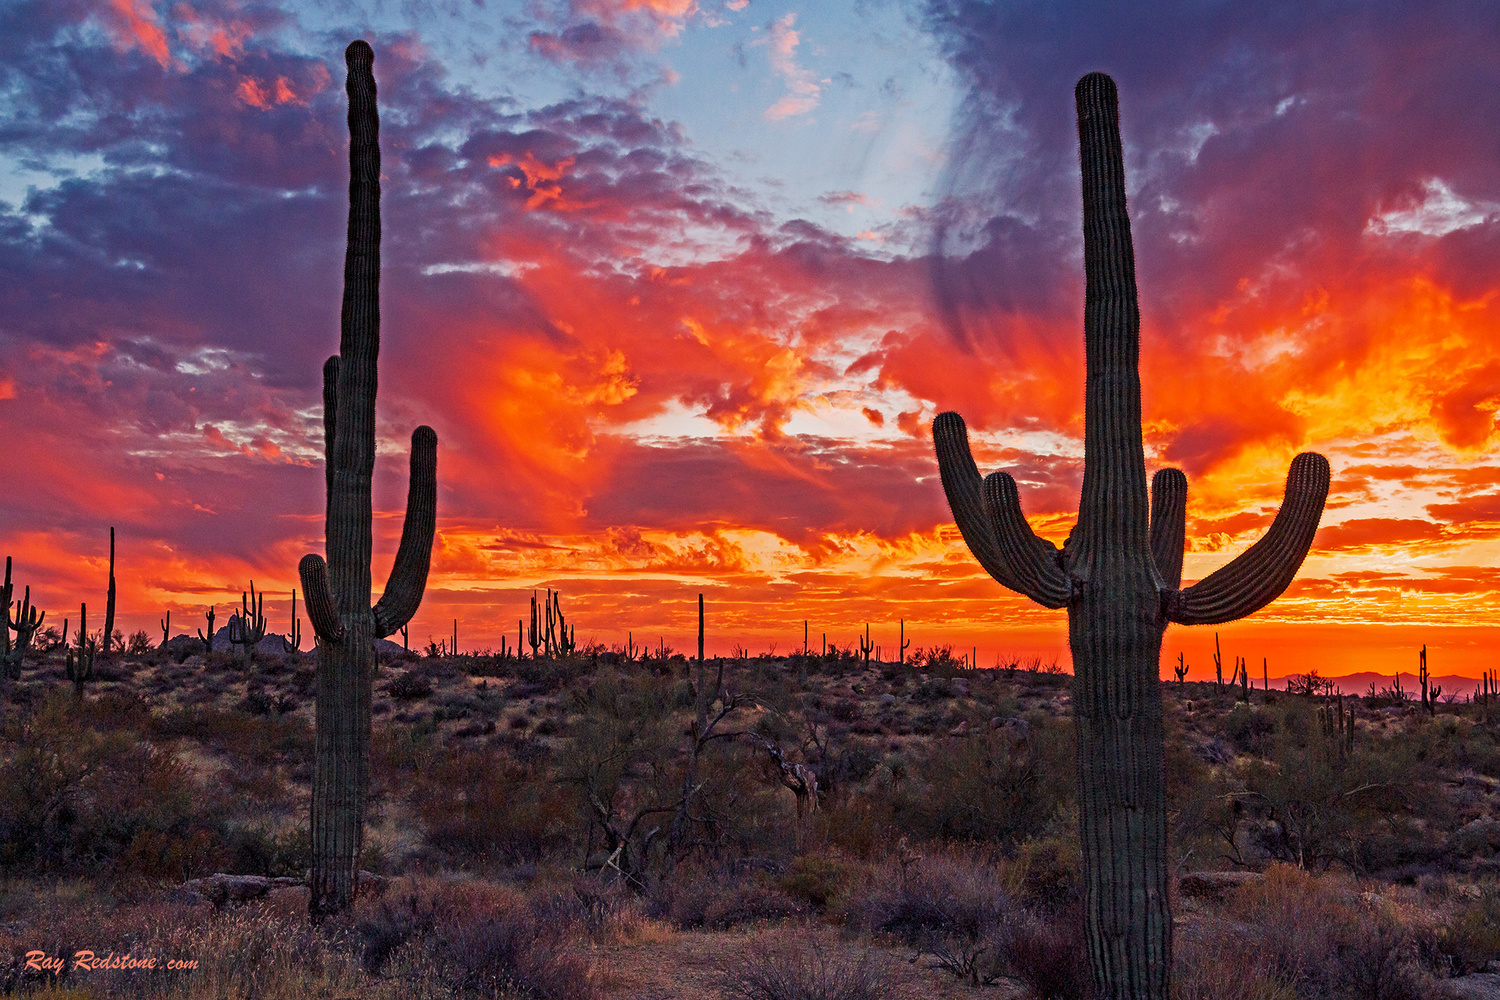 Sky On Fire Sunset In Th Desert Southwest by Ray Redstone